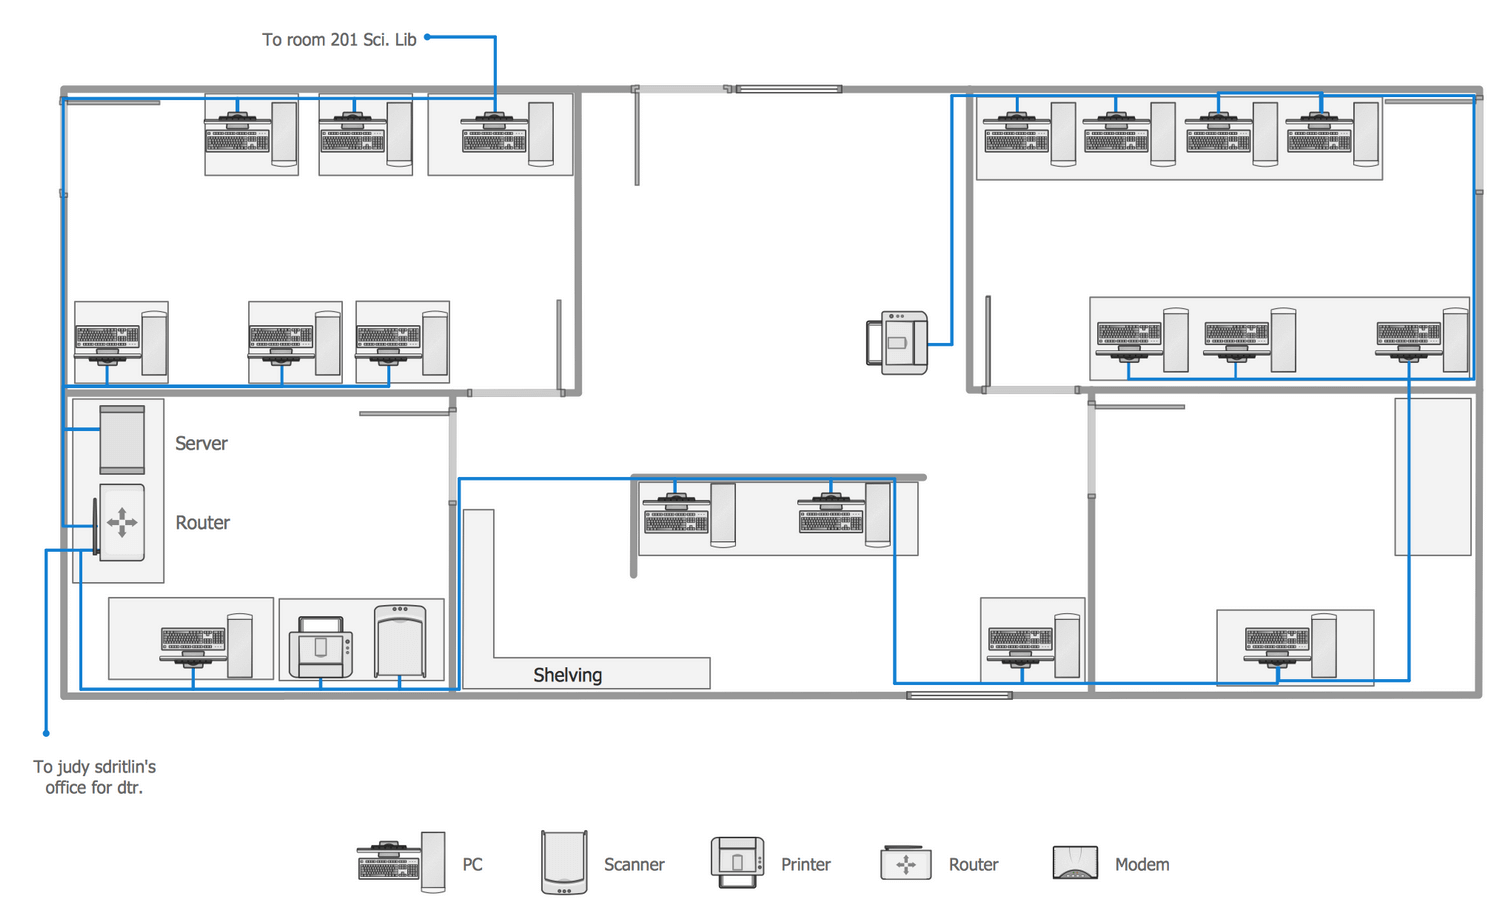 network layout floor plans solution | conceptdraw.com  conceptdraw.com